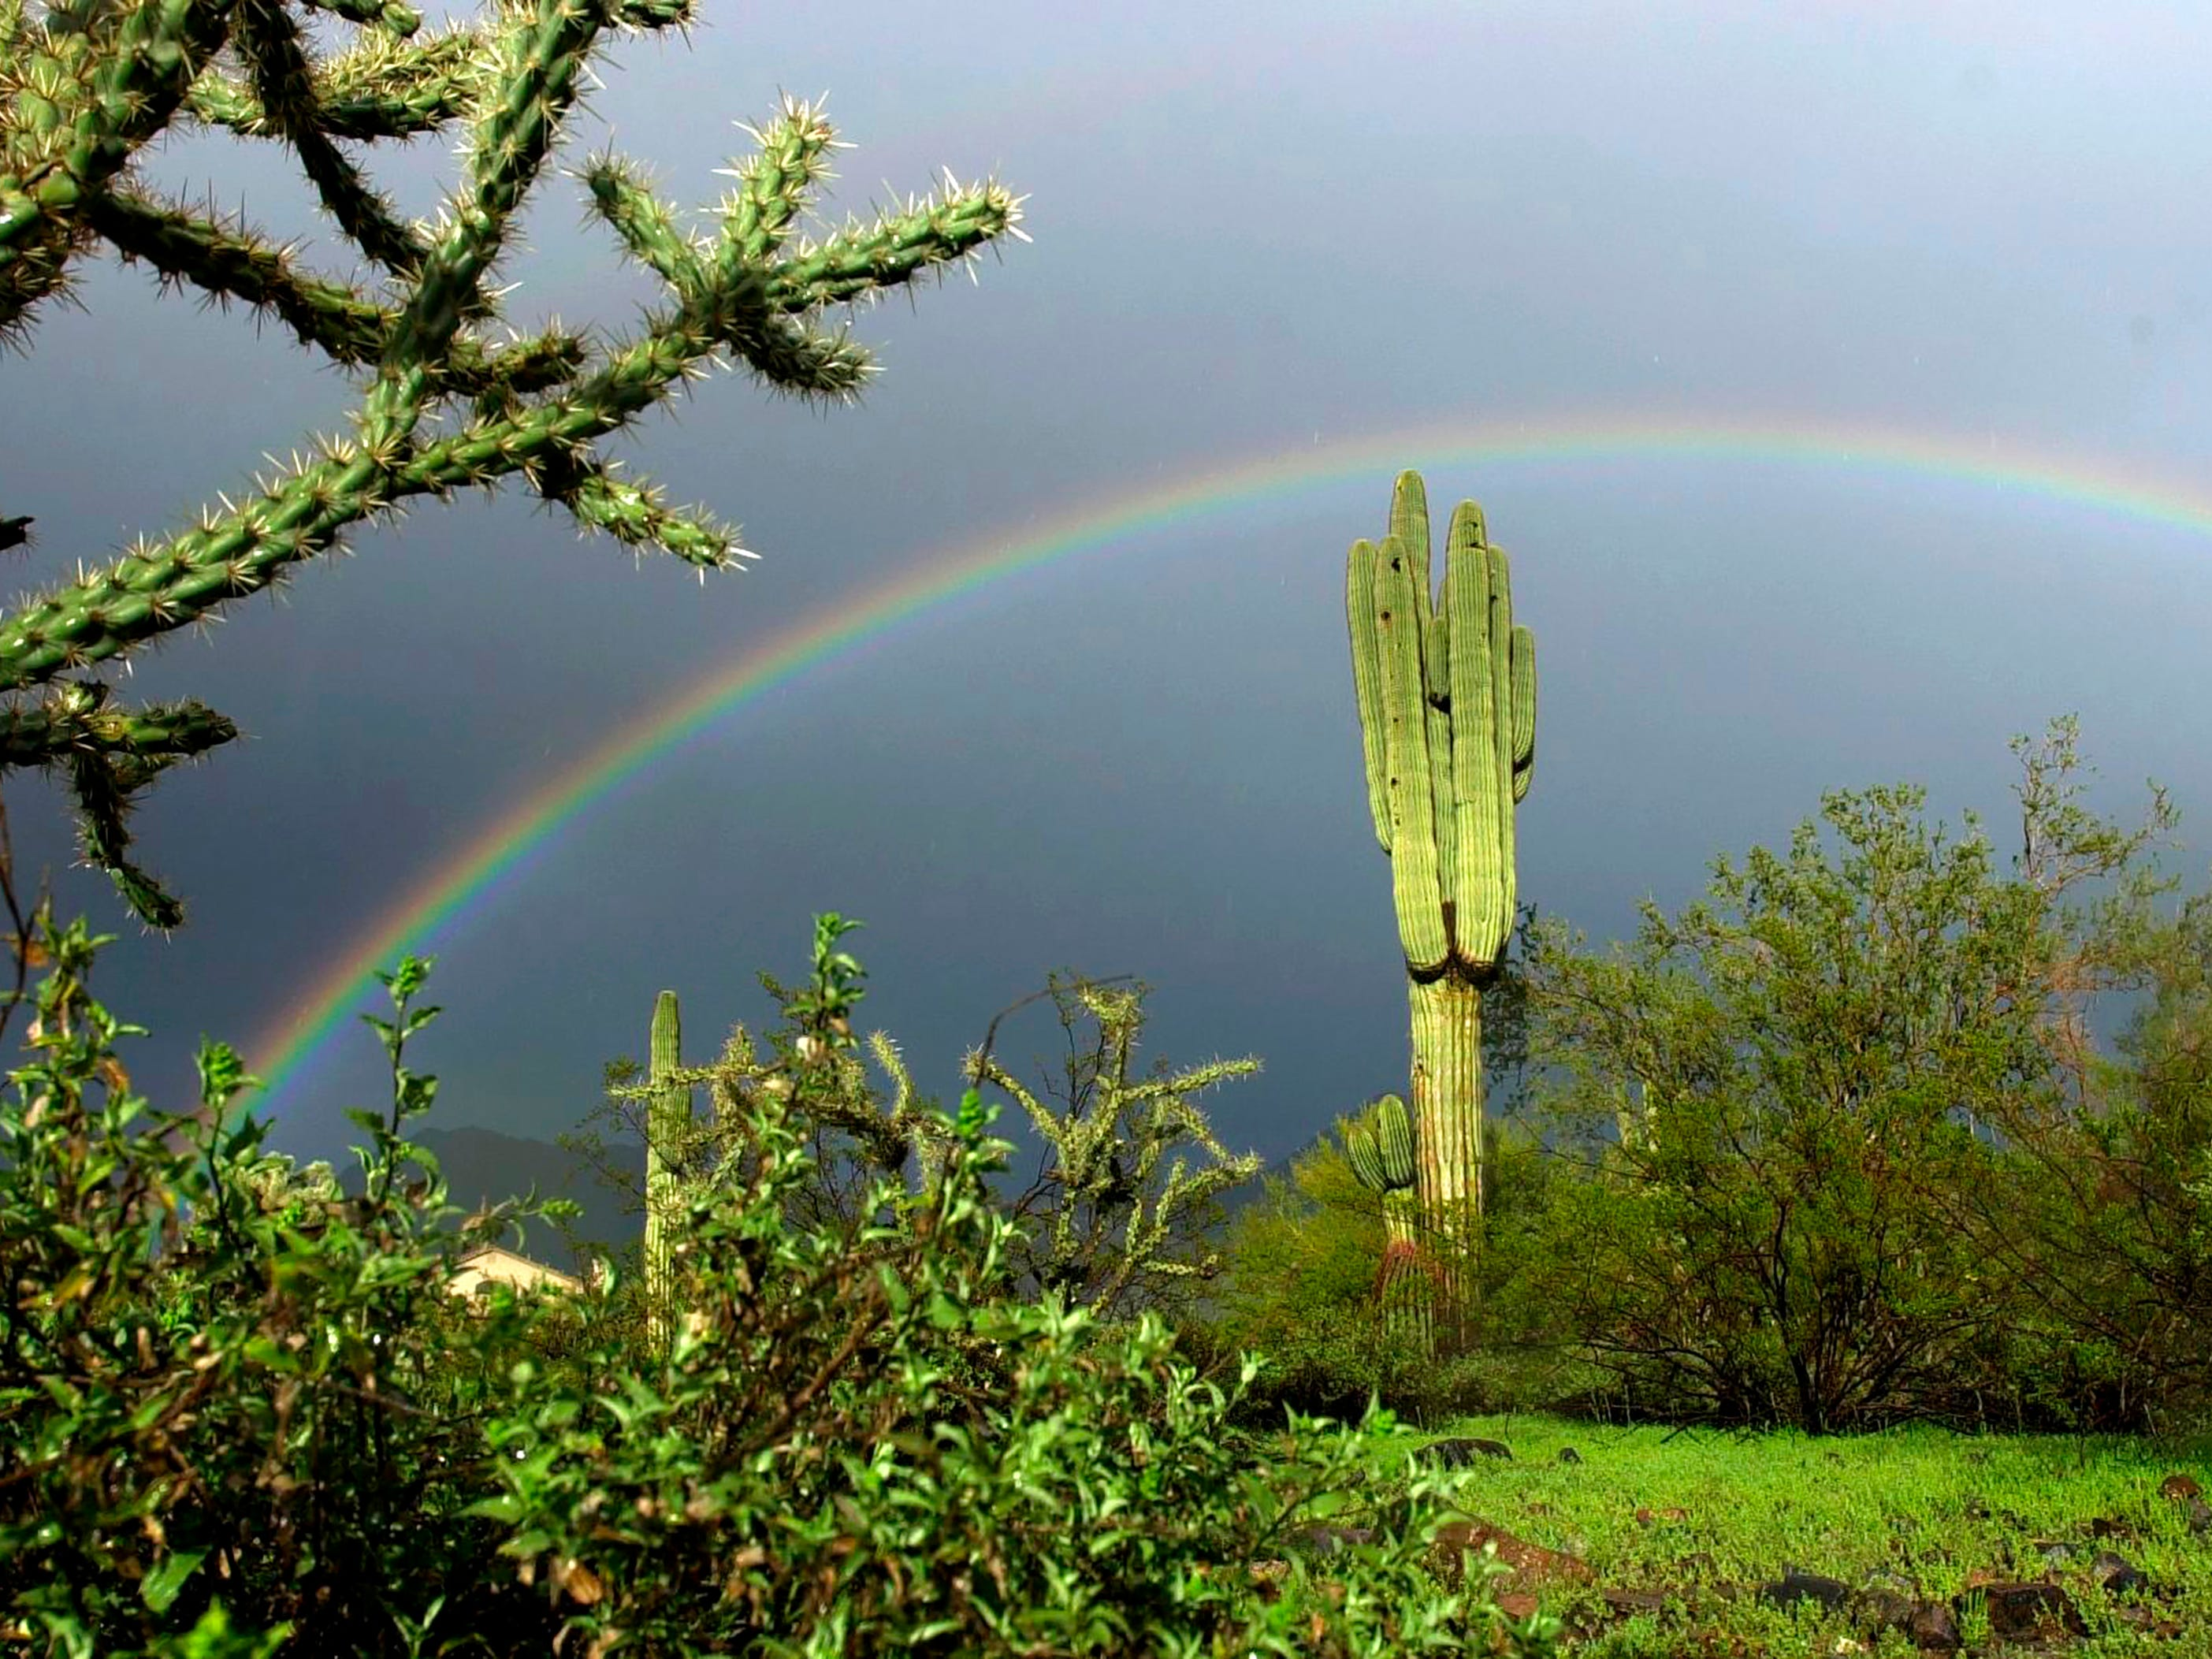 A full rainbow arches over a saguaro cactus in the Scottsdale desert after a rain showers.